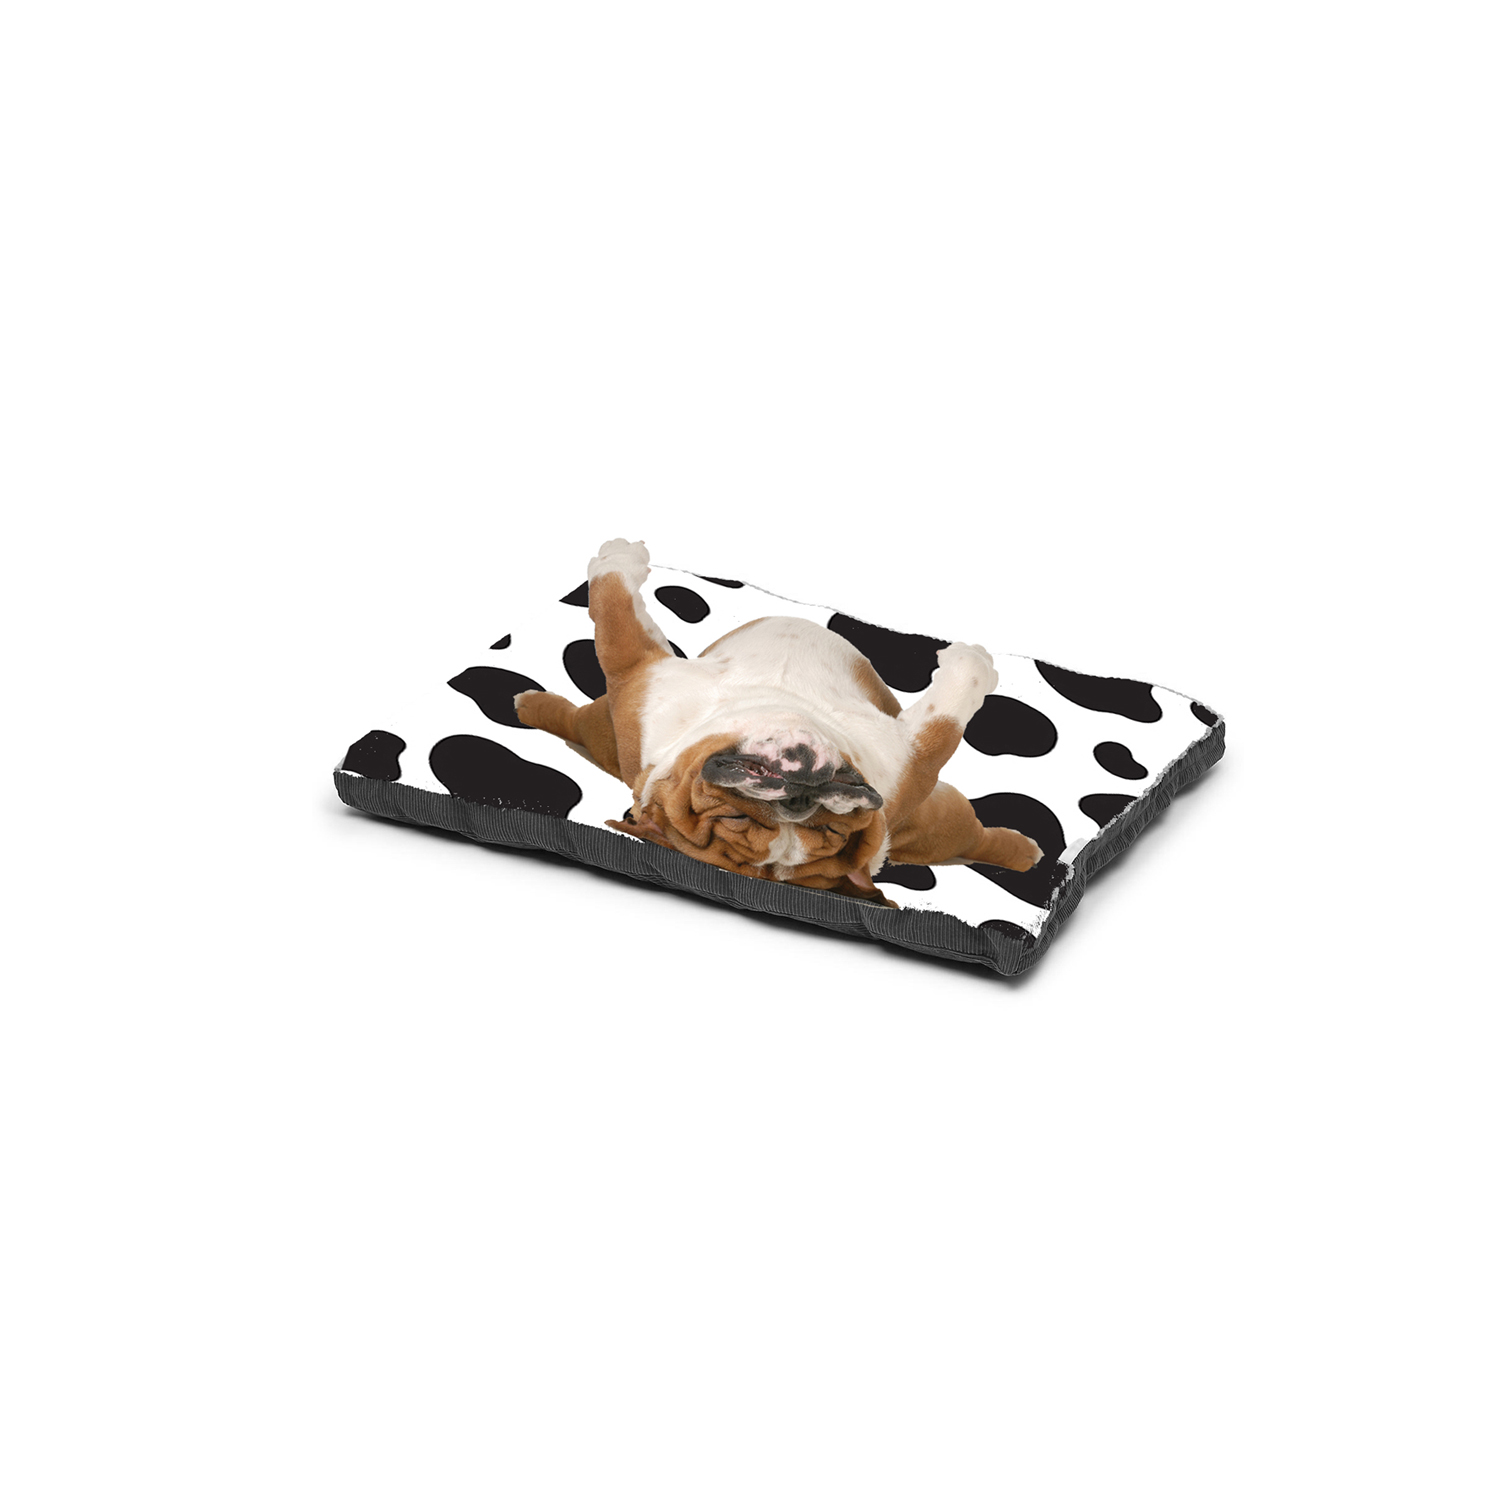 Vetbed Dog and Cat Bedding (Cow) 26 x 20